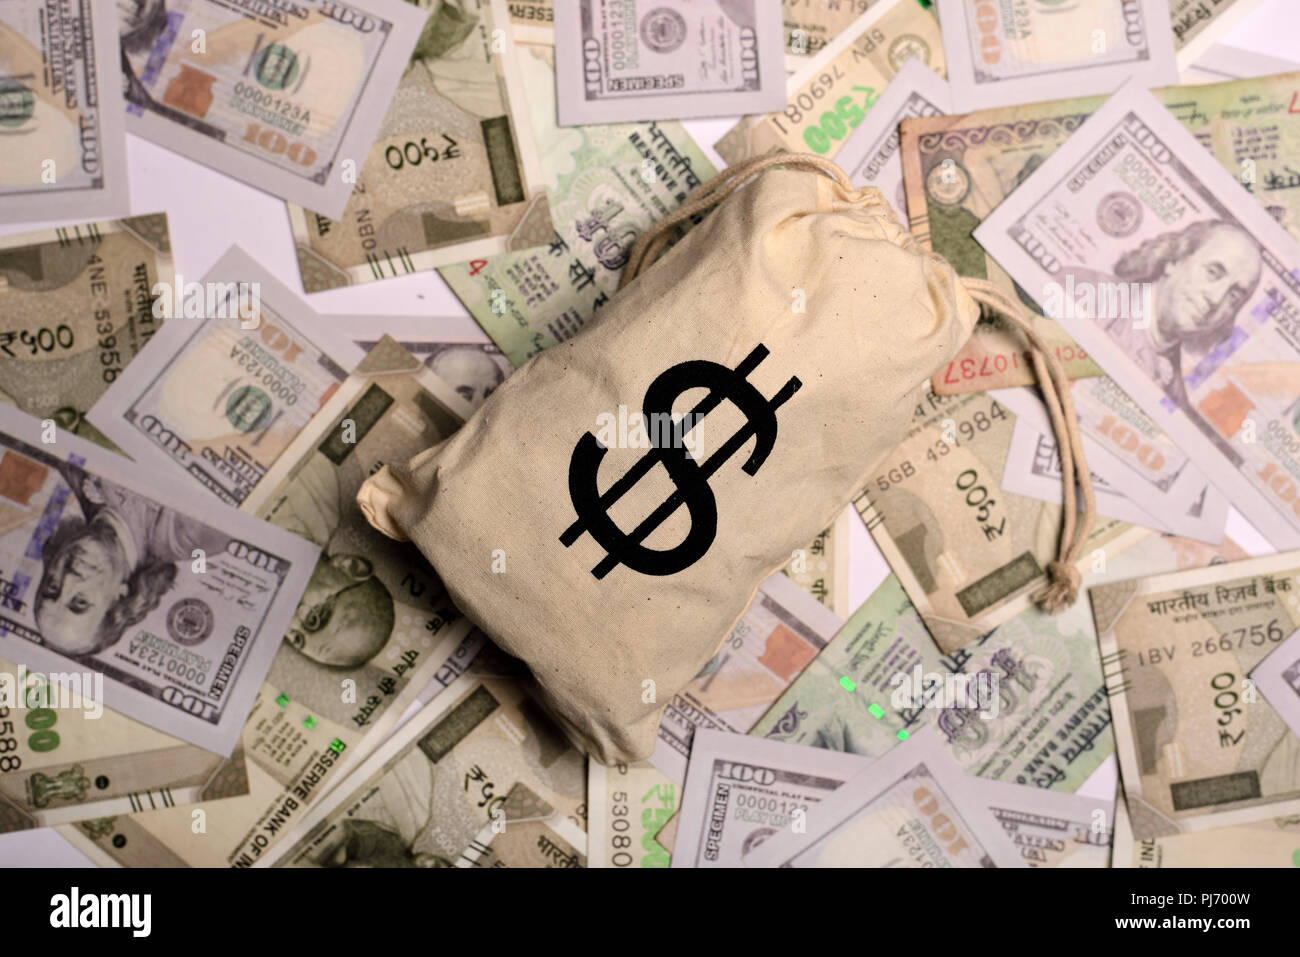 US Dollar Bag Against Rupees And Dollar Paper Currency Stock Photo